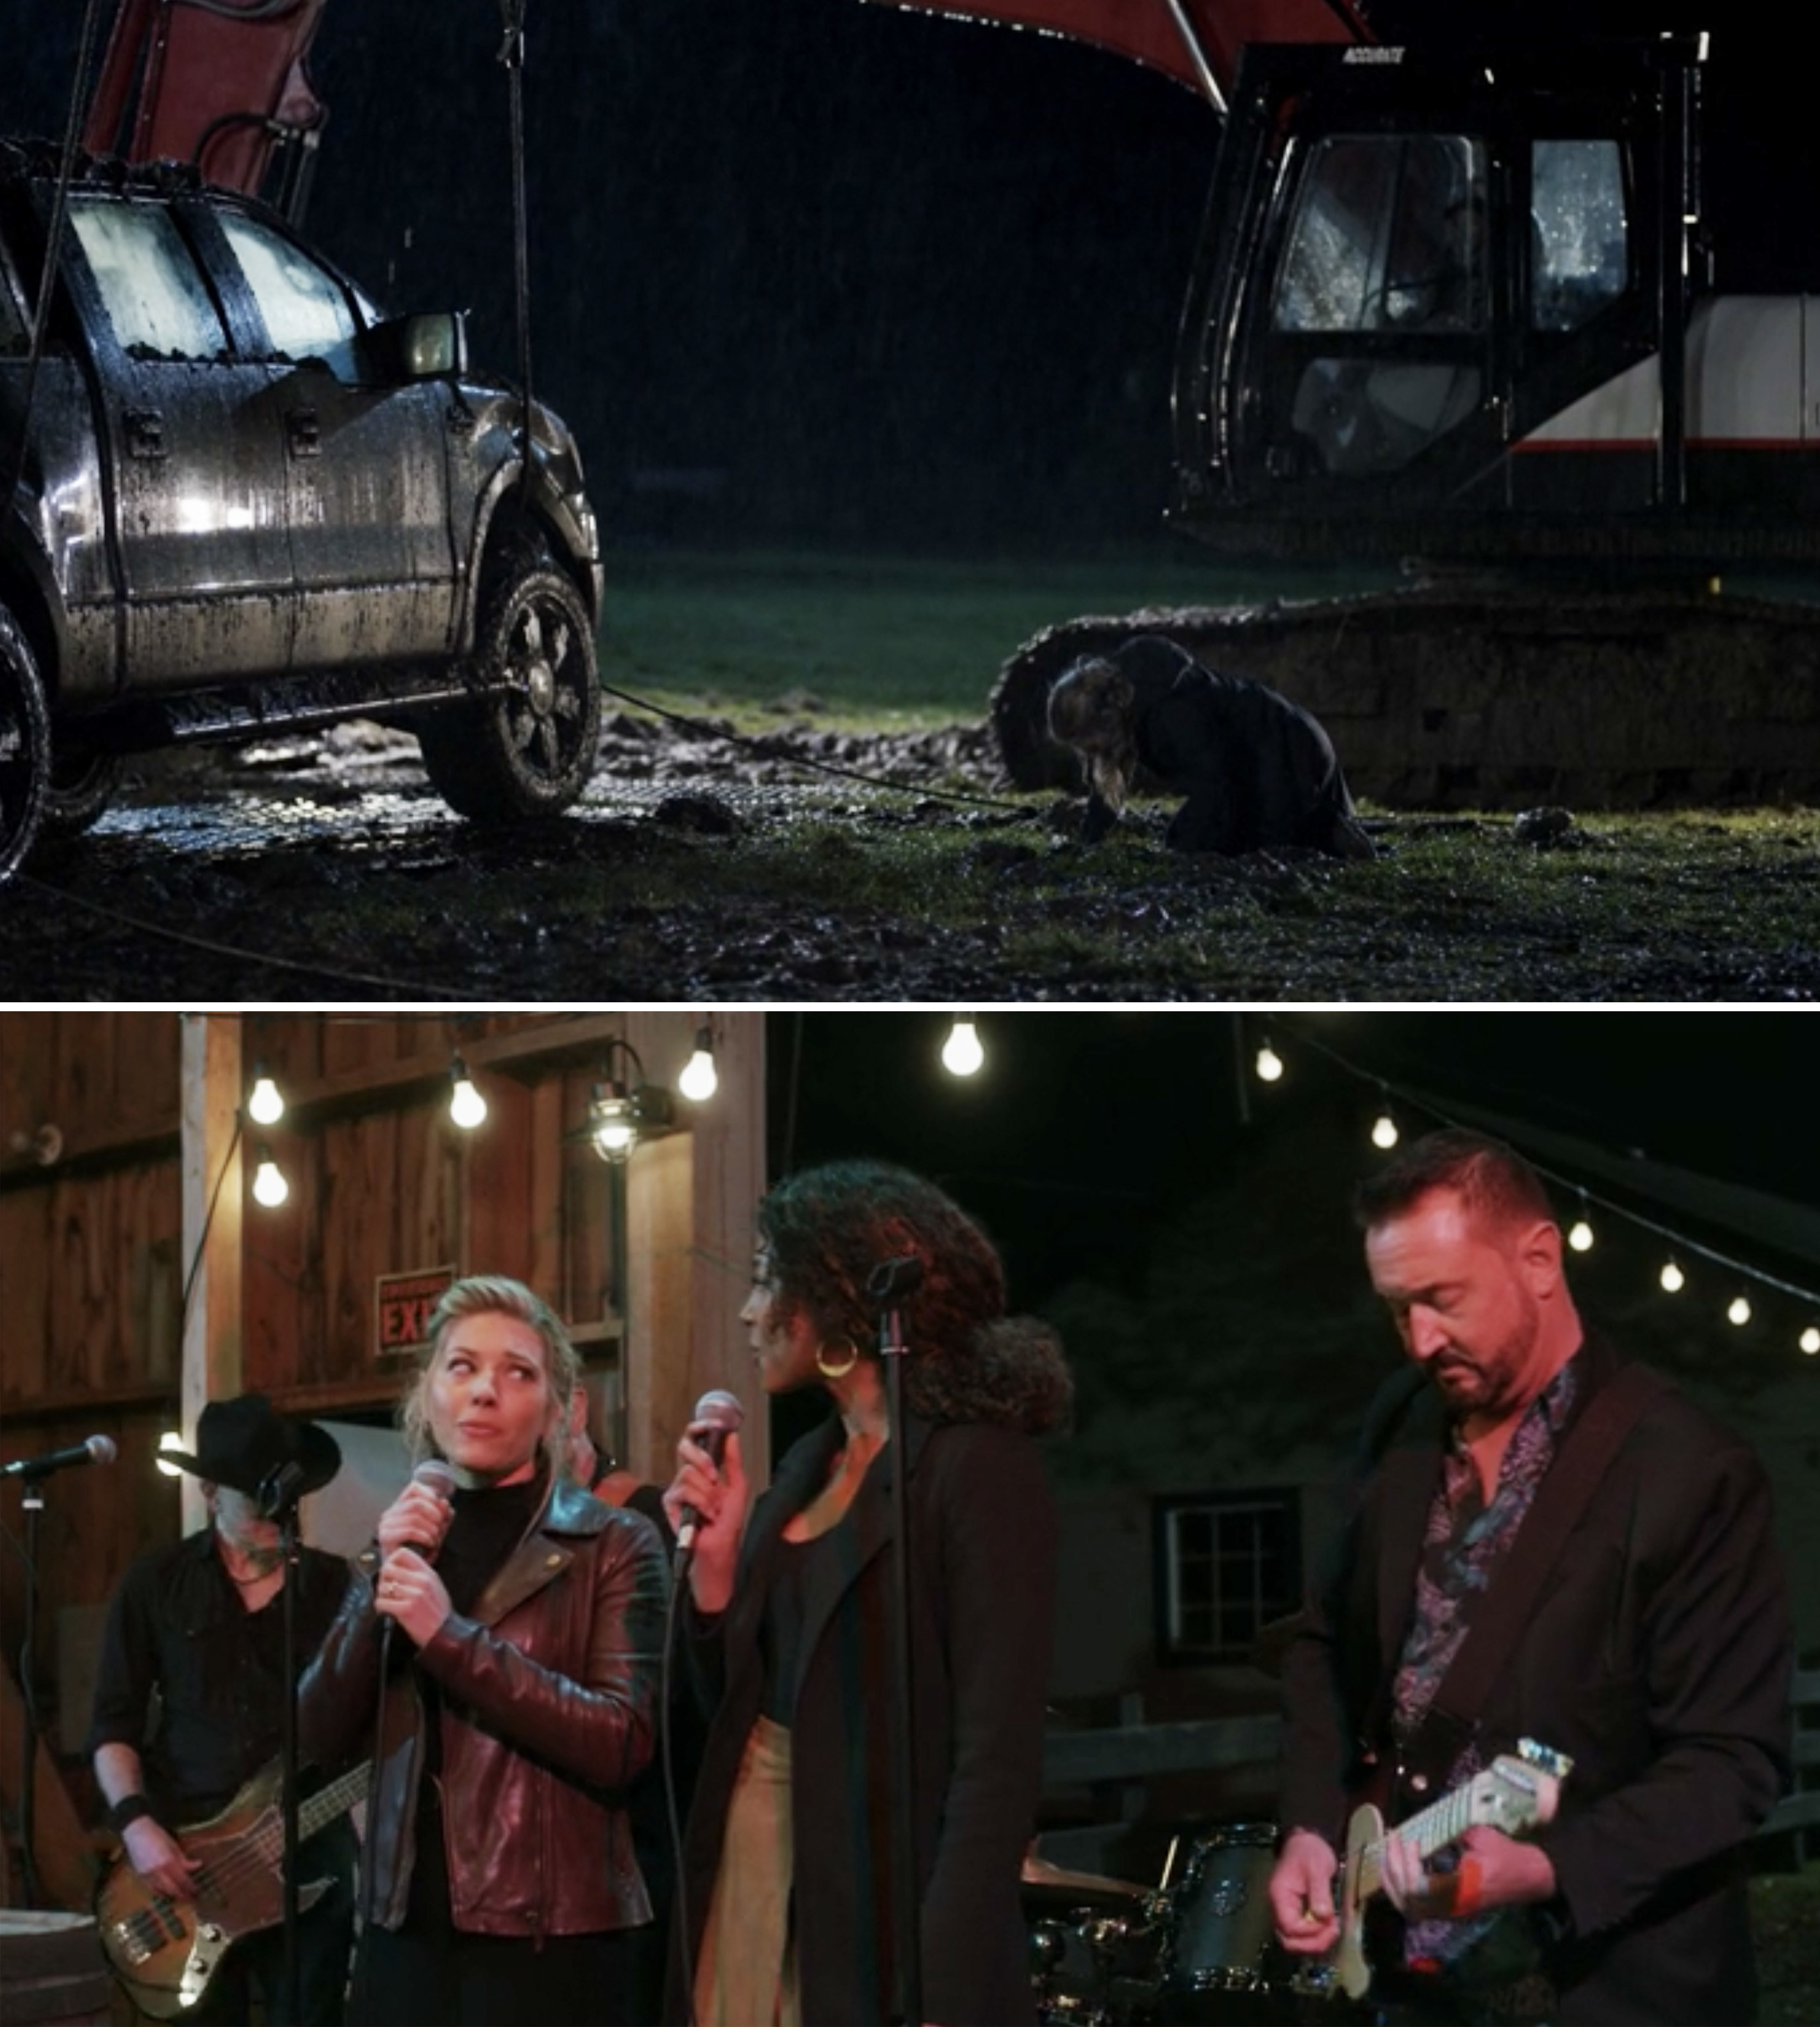 Jenny sobbing on the ground after finding Cody's truck, and Jenny and Cassie singing at Cody's funeral